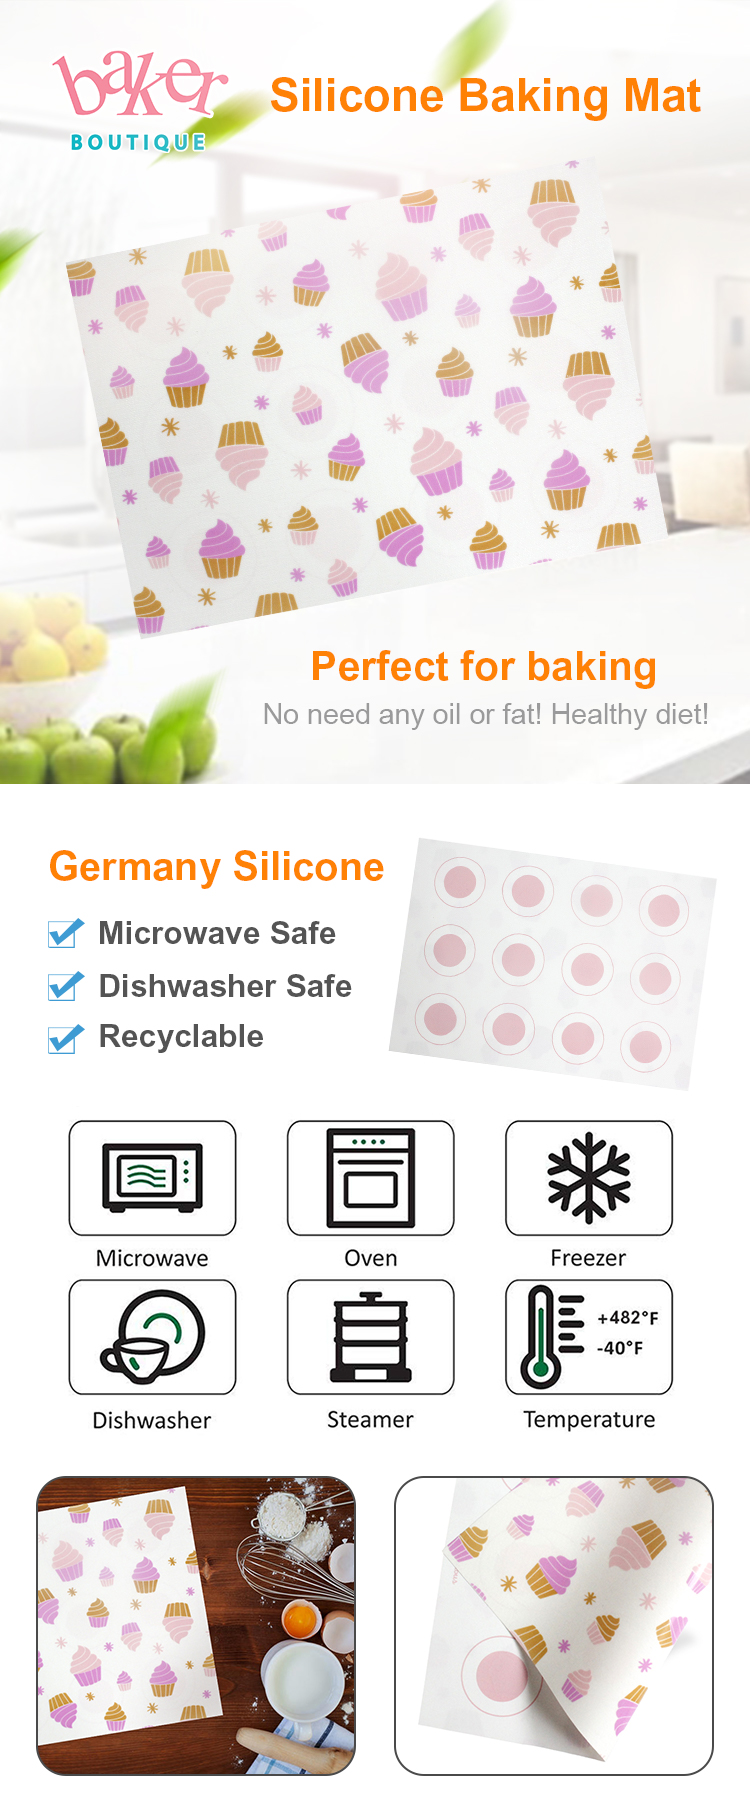 Rubber Pastry Baking Mat for Oven Flexible Silicone Baking Sheets